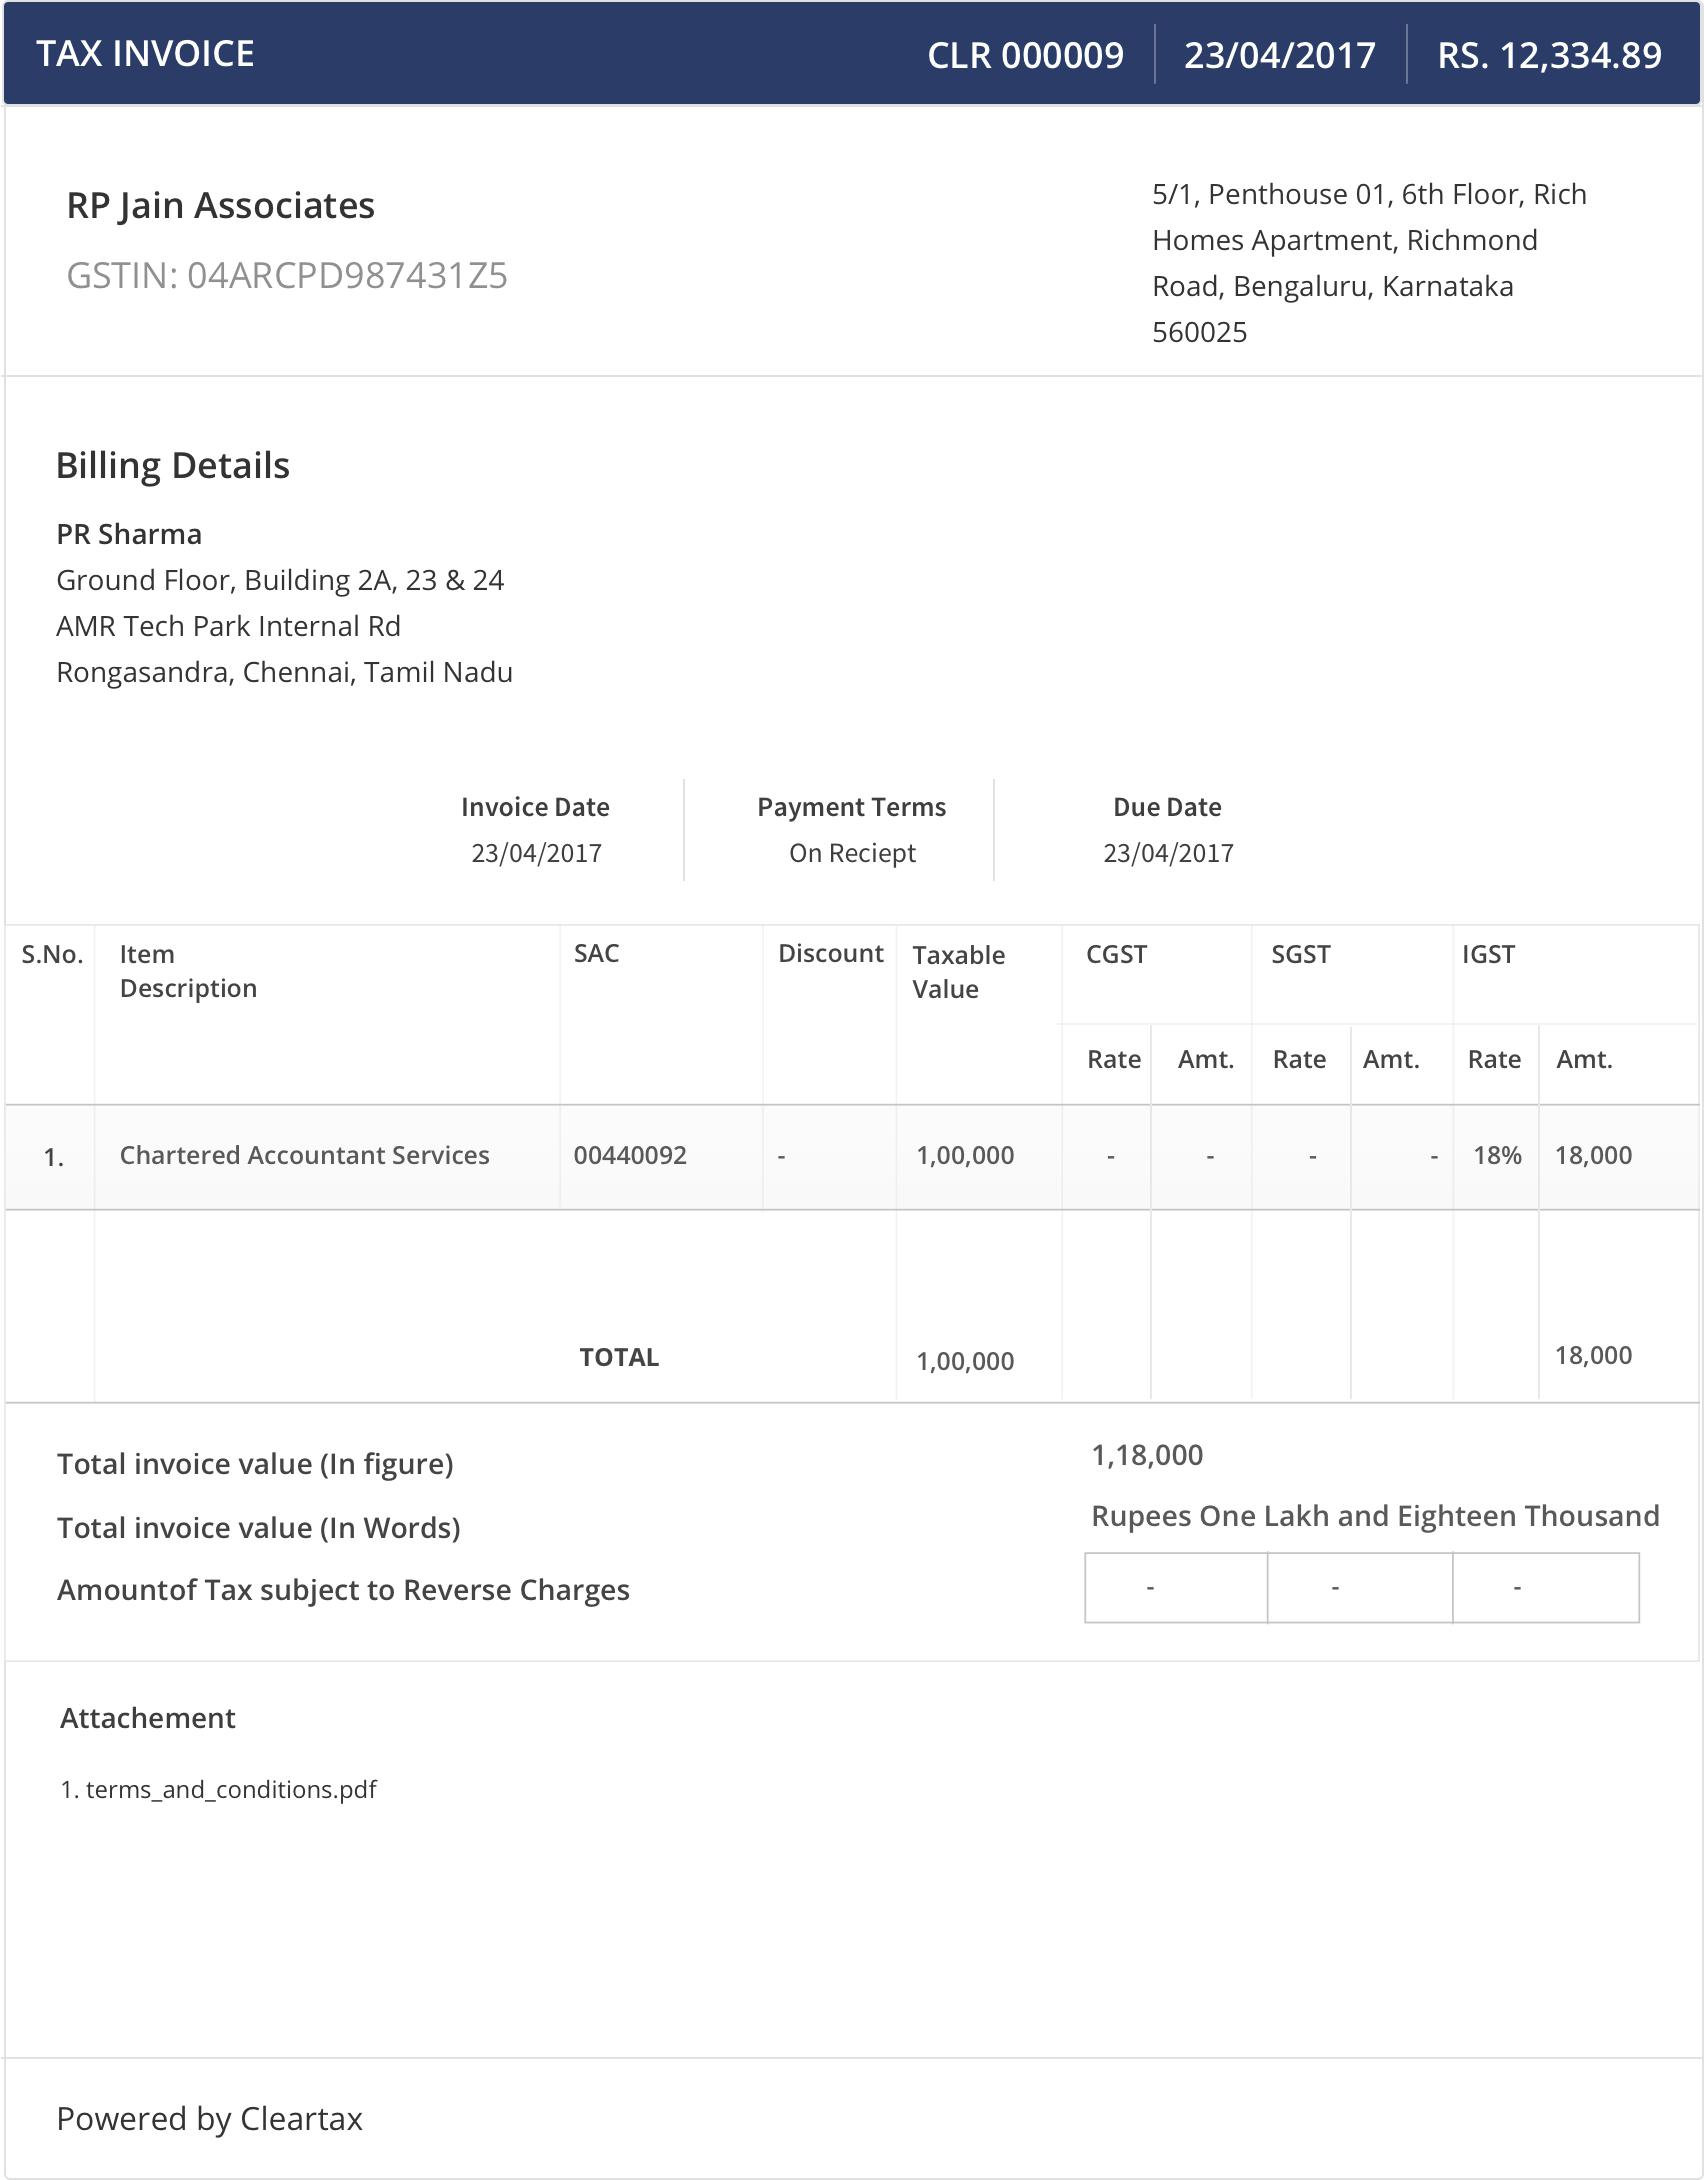 Goodwill Donation Receipt Word Invoicing Under Gst Supply Of Services Here Is All You Need To Know Design Receipt Excel with Scansnap Receipts Gst Invoice Example I Lost My Receipt Excel